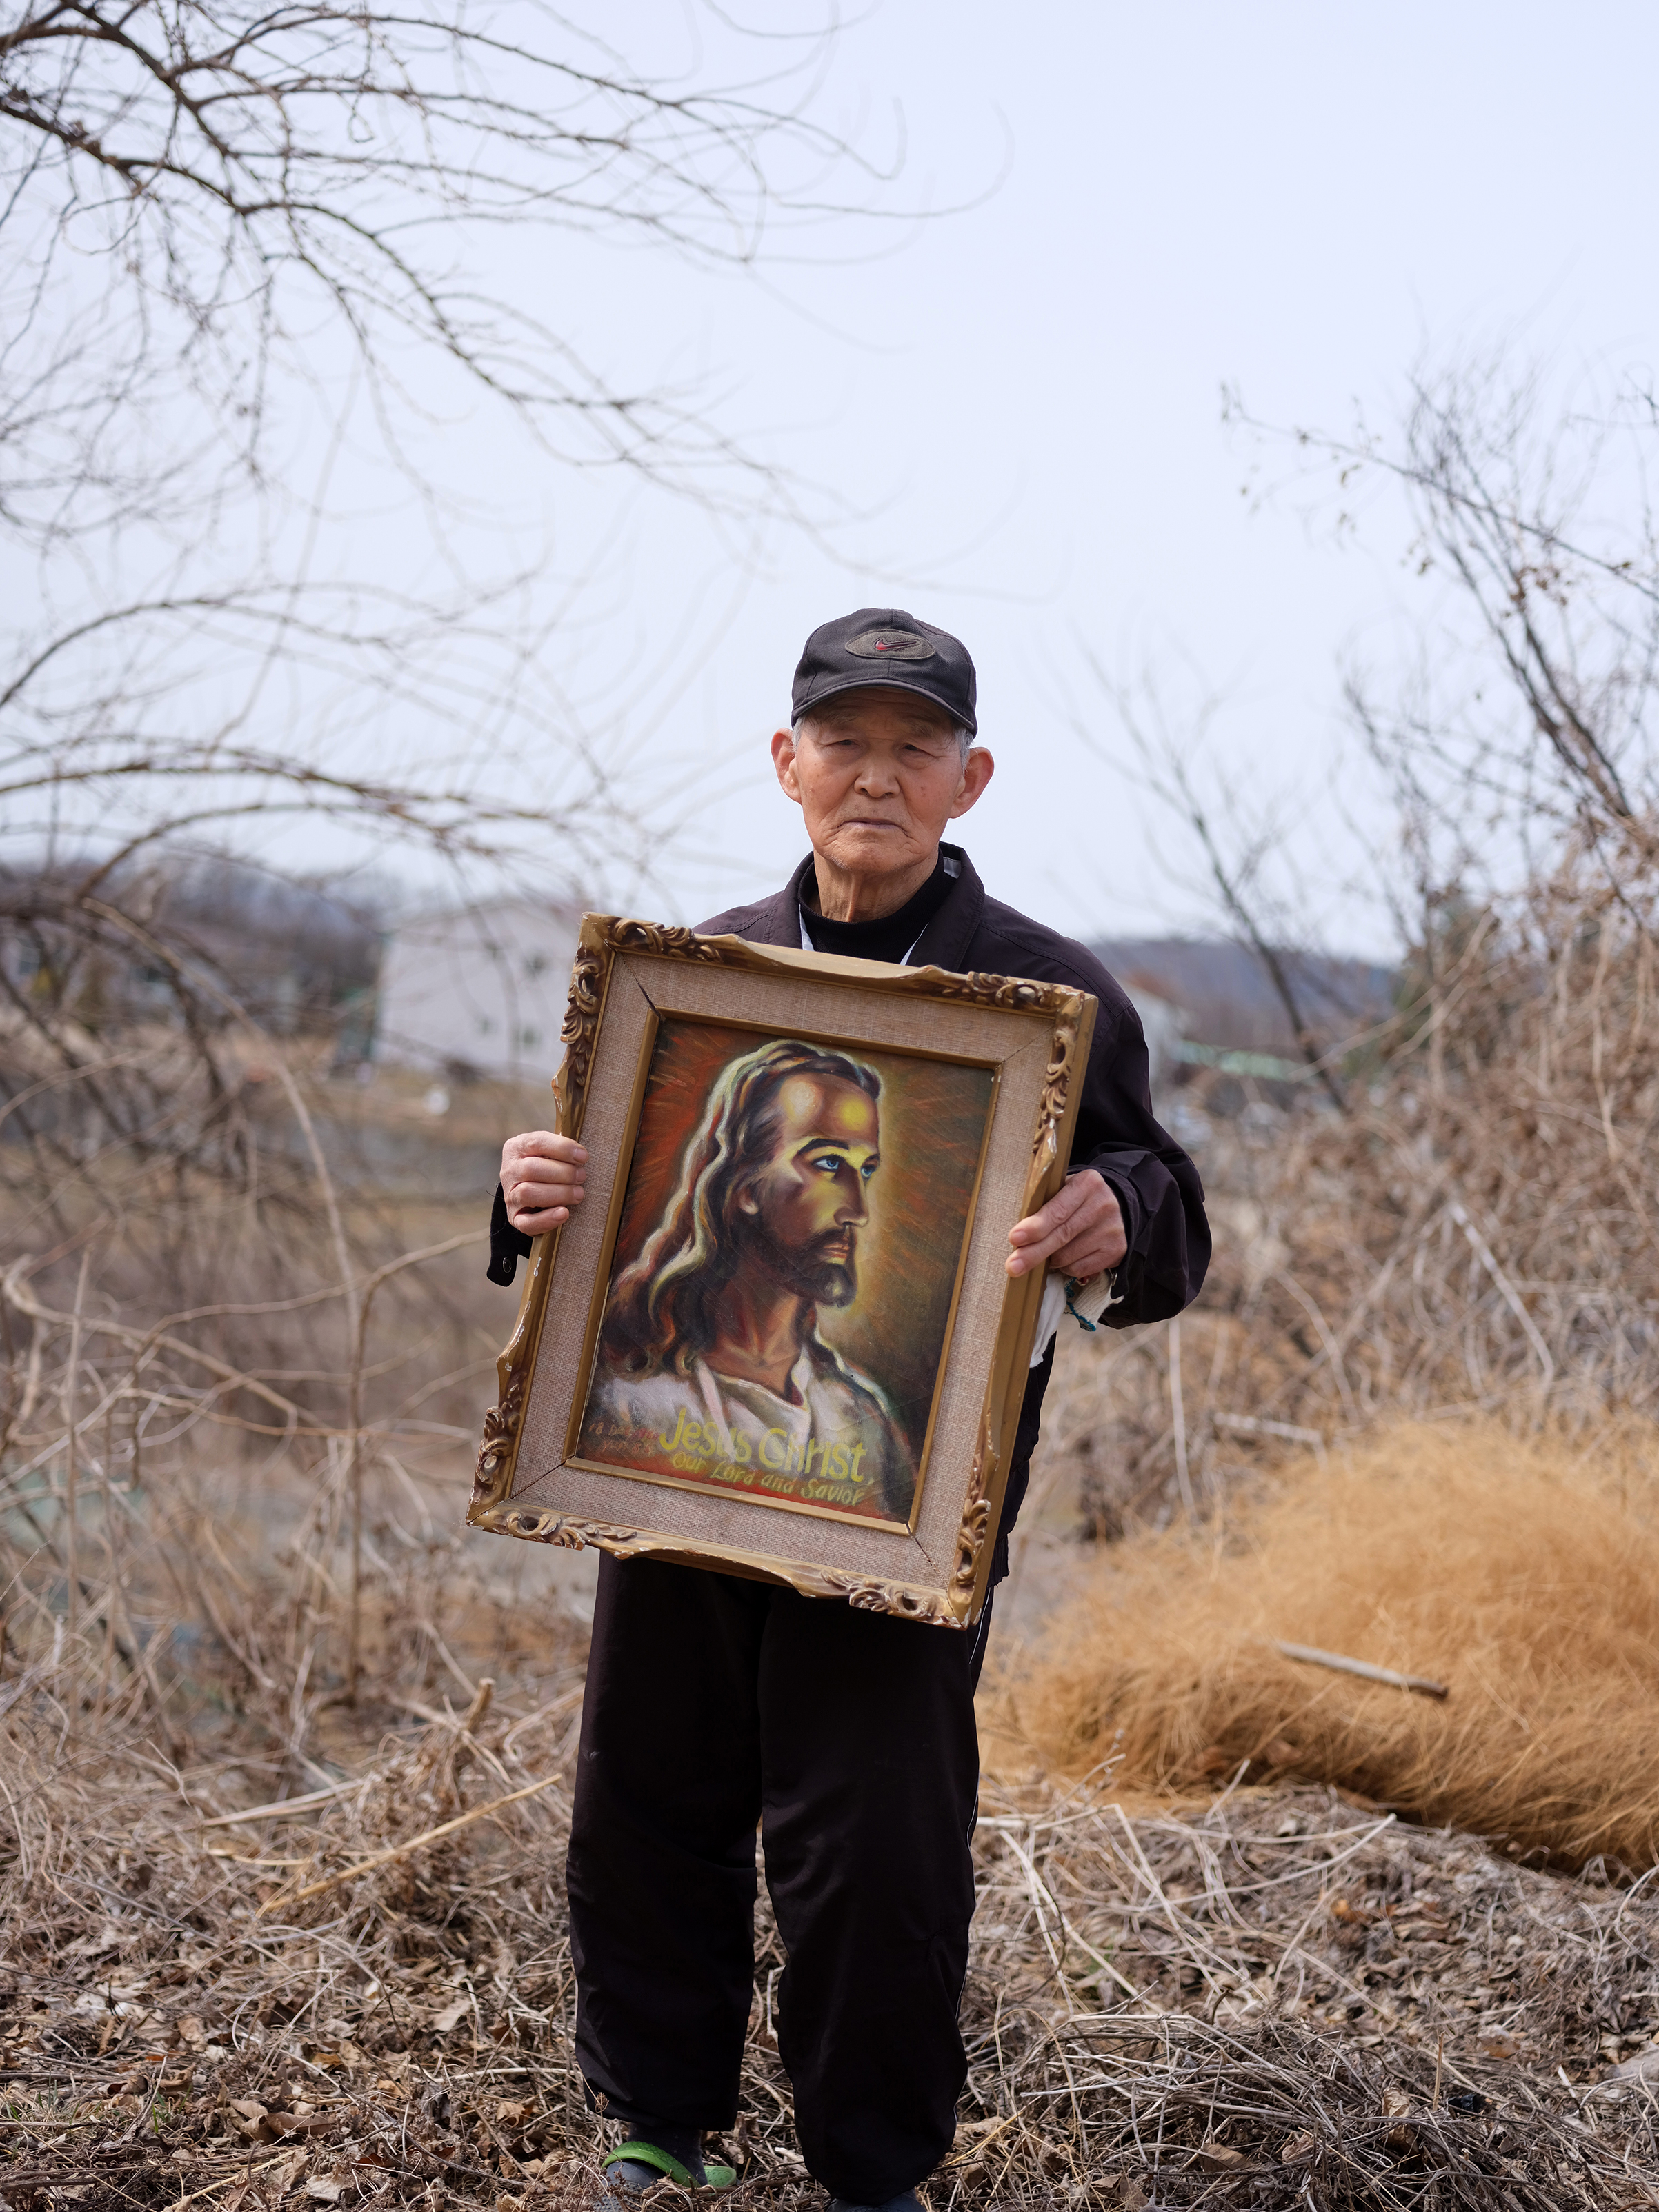 Yoon Seok-sahn, who was separated from his family in the North, poses near his home in Tongilchon.